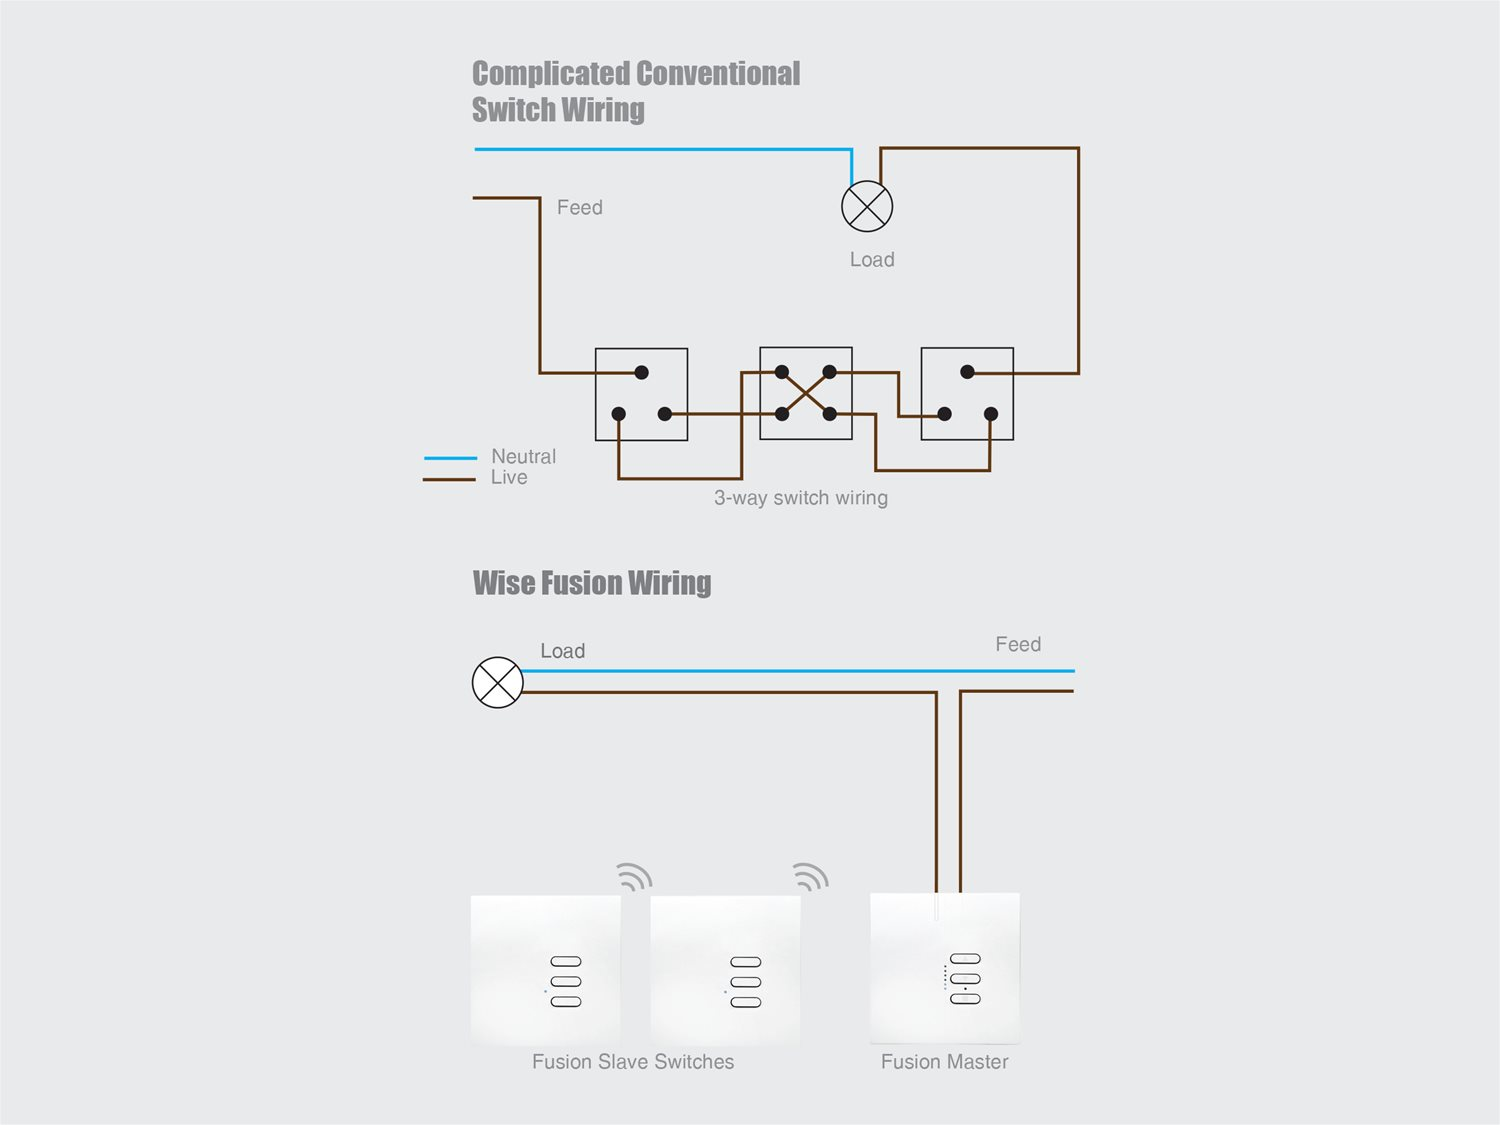 2 gang way light switch wiring diagram uk hpm double wise fusion dimmer master wired 4 240v primed white